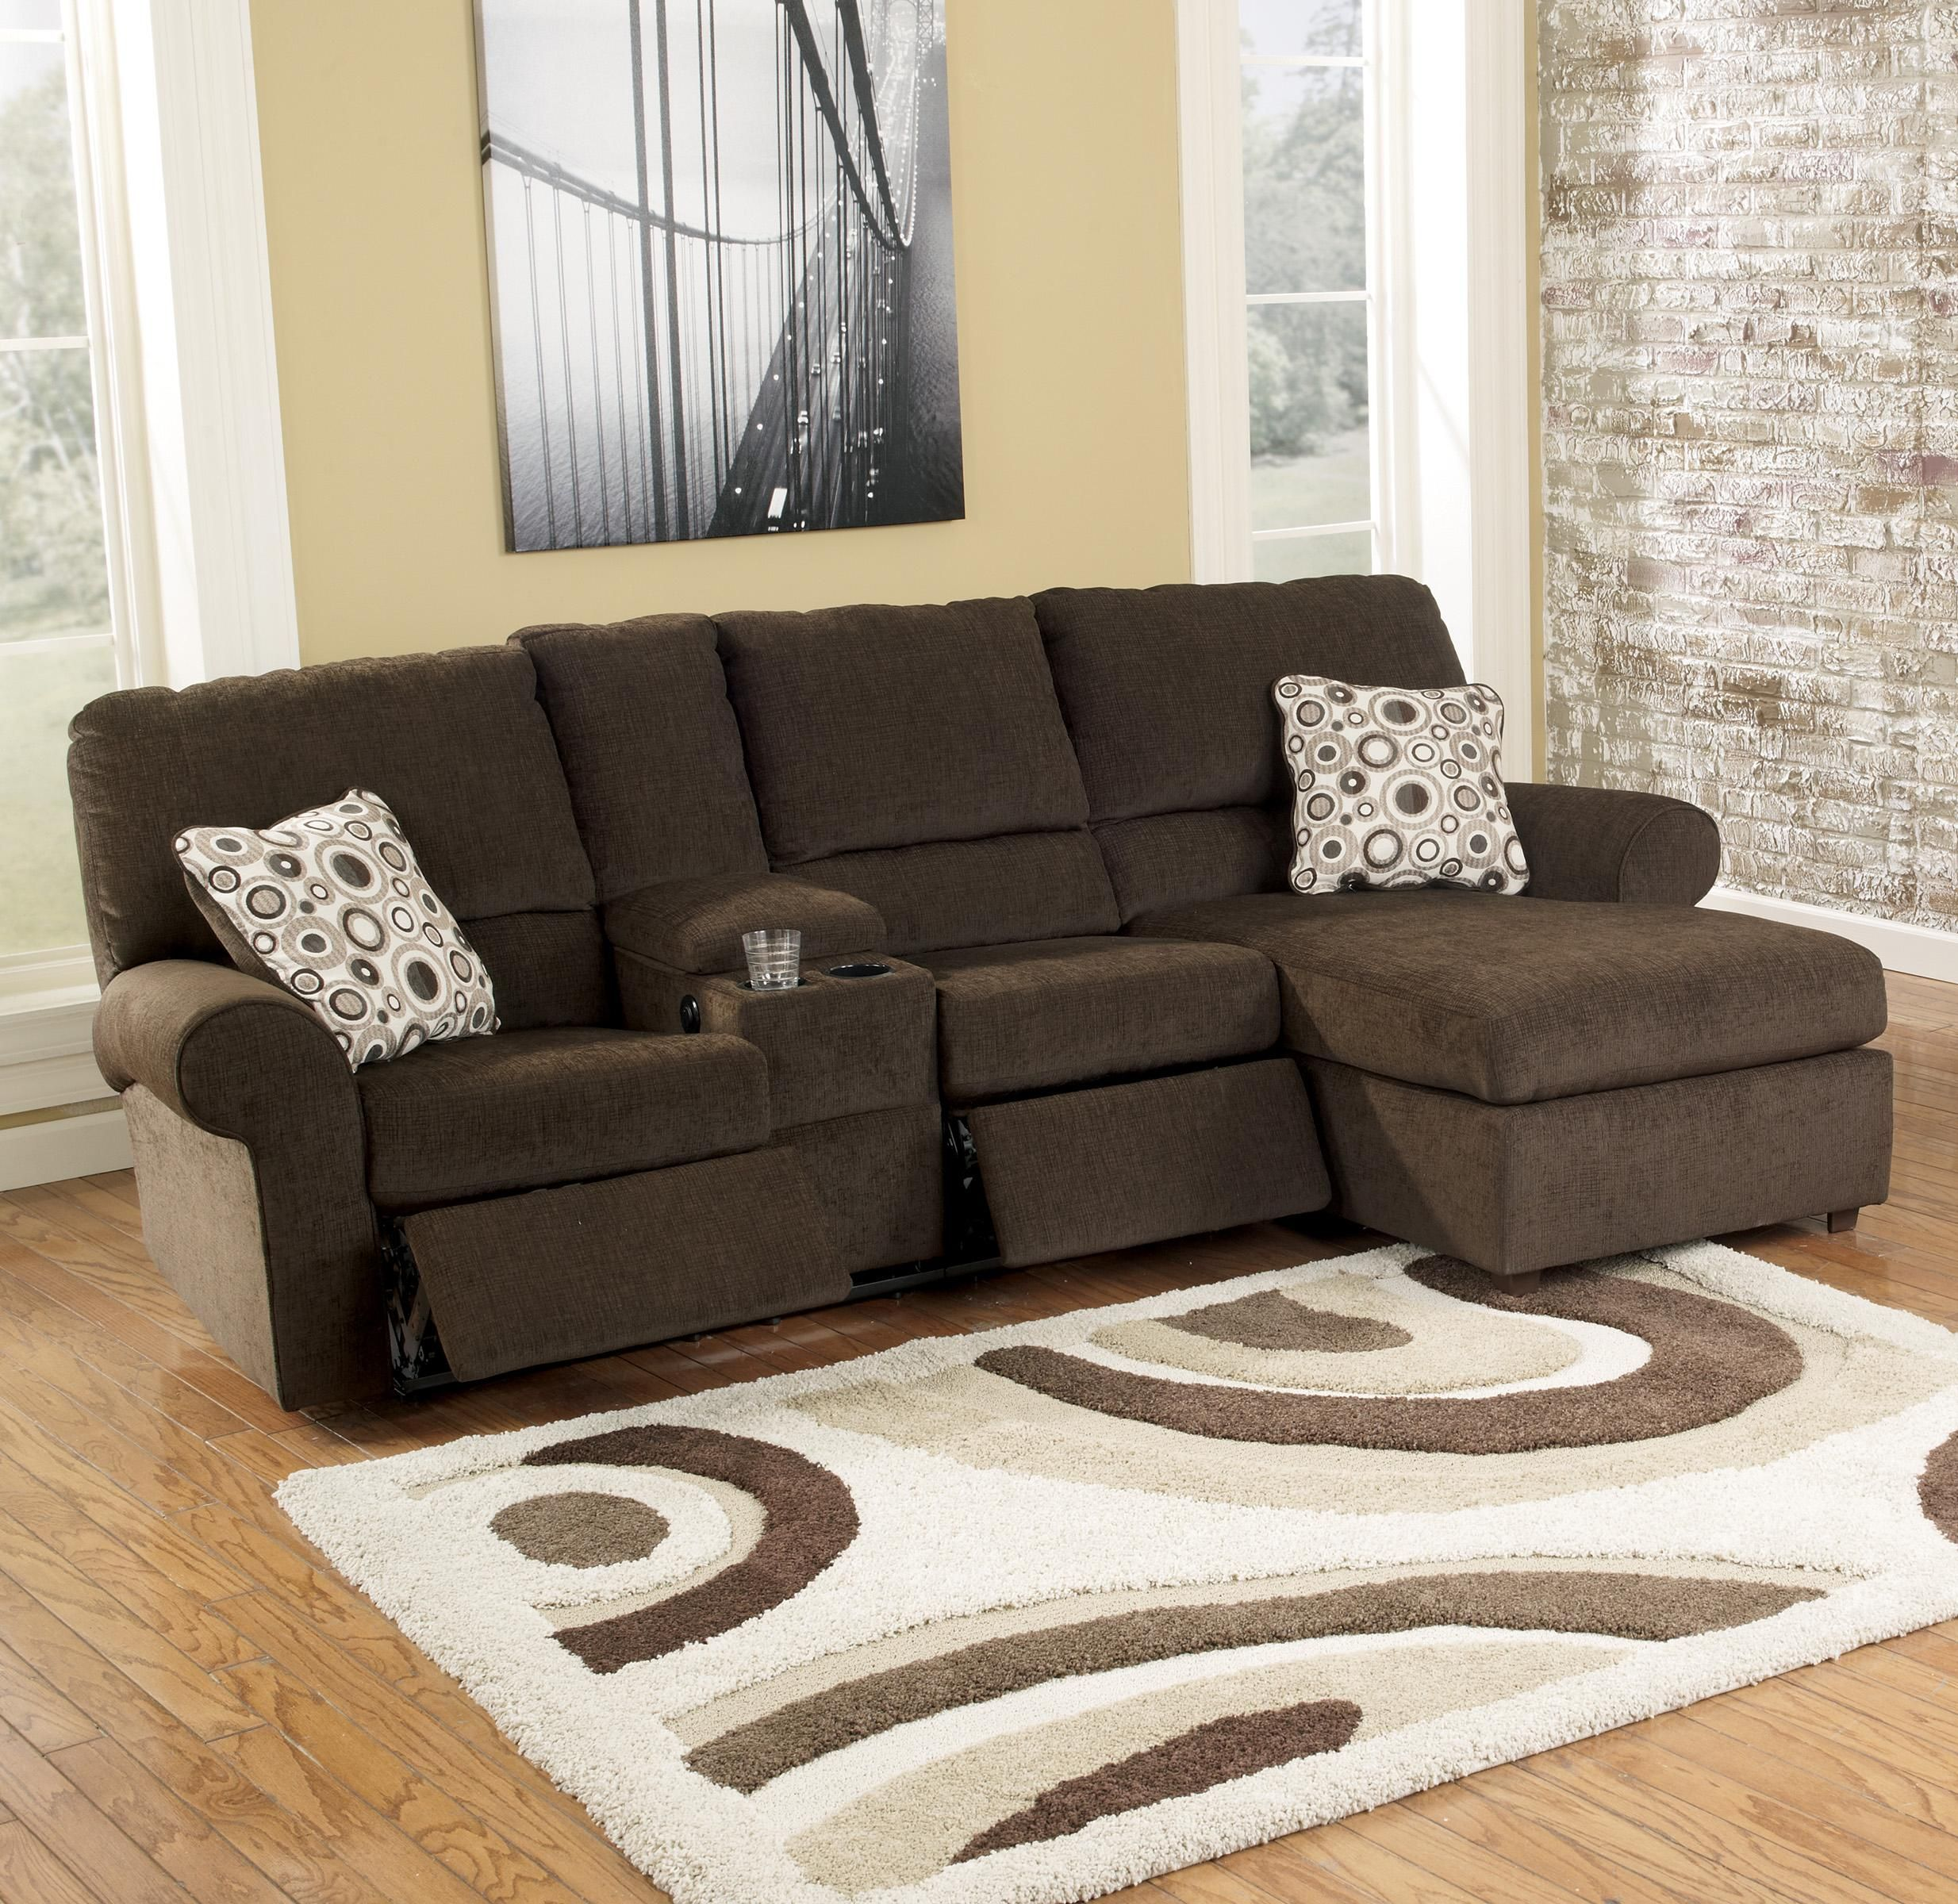 Cybertrack - Chocolate Power Reclining Sectional by Signature Design by Ashley & Cybertrack - Chocolate Power Reclining Sectional by Signature ... islam-shia.org